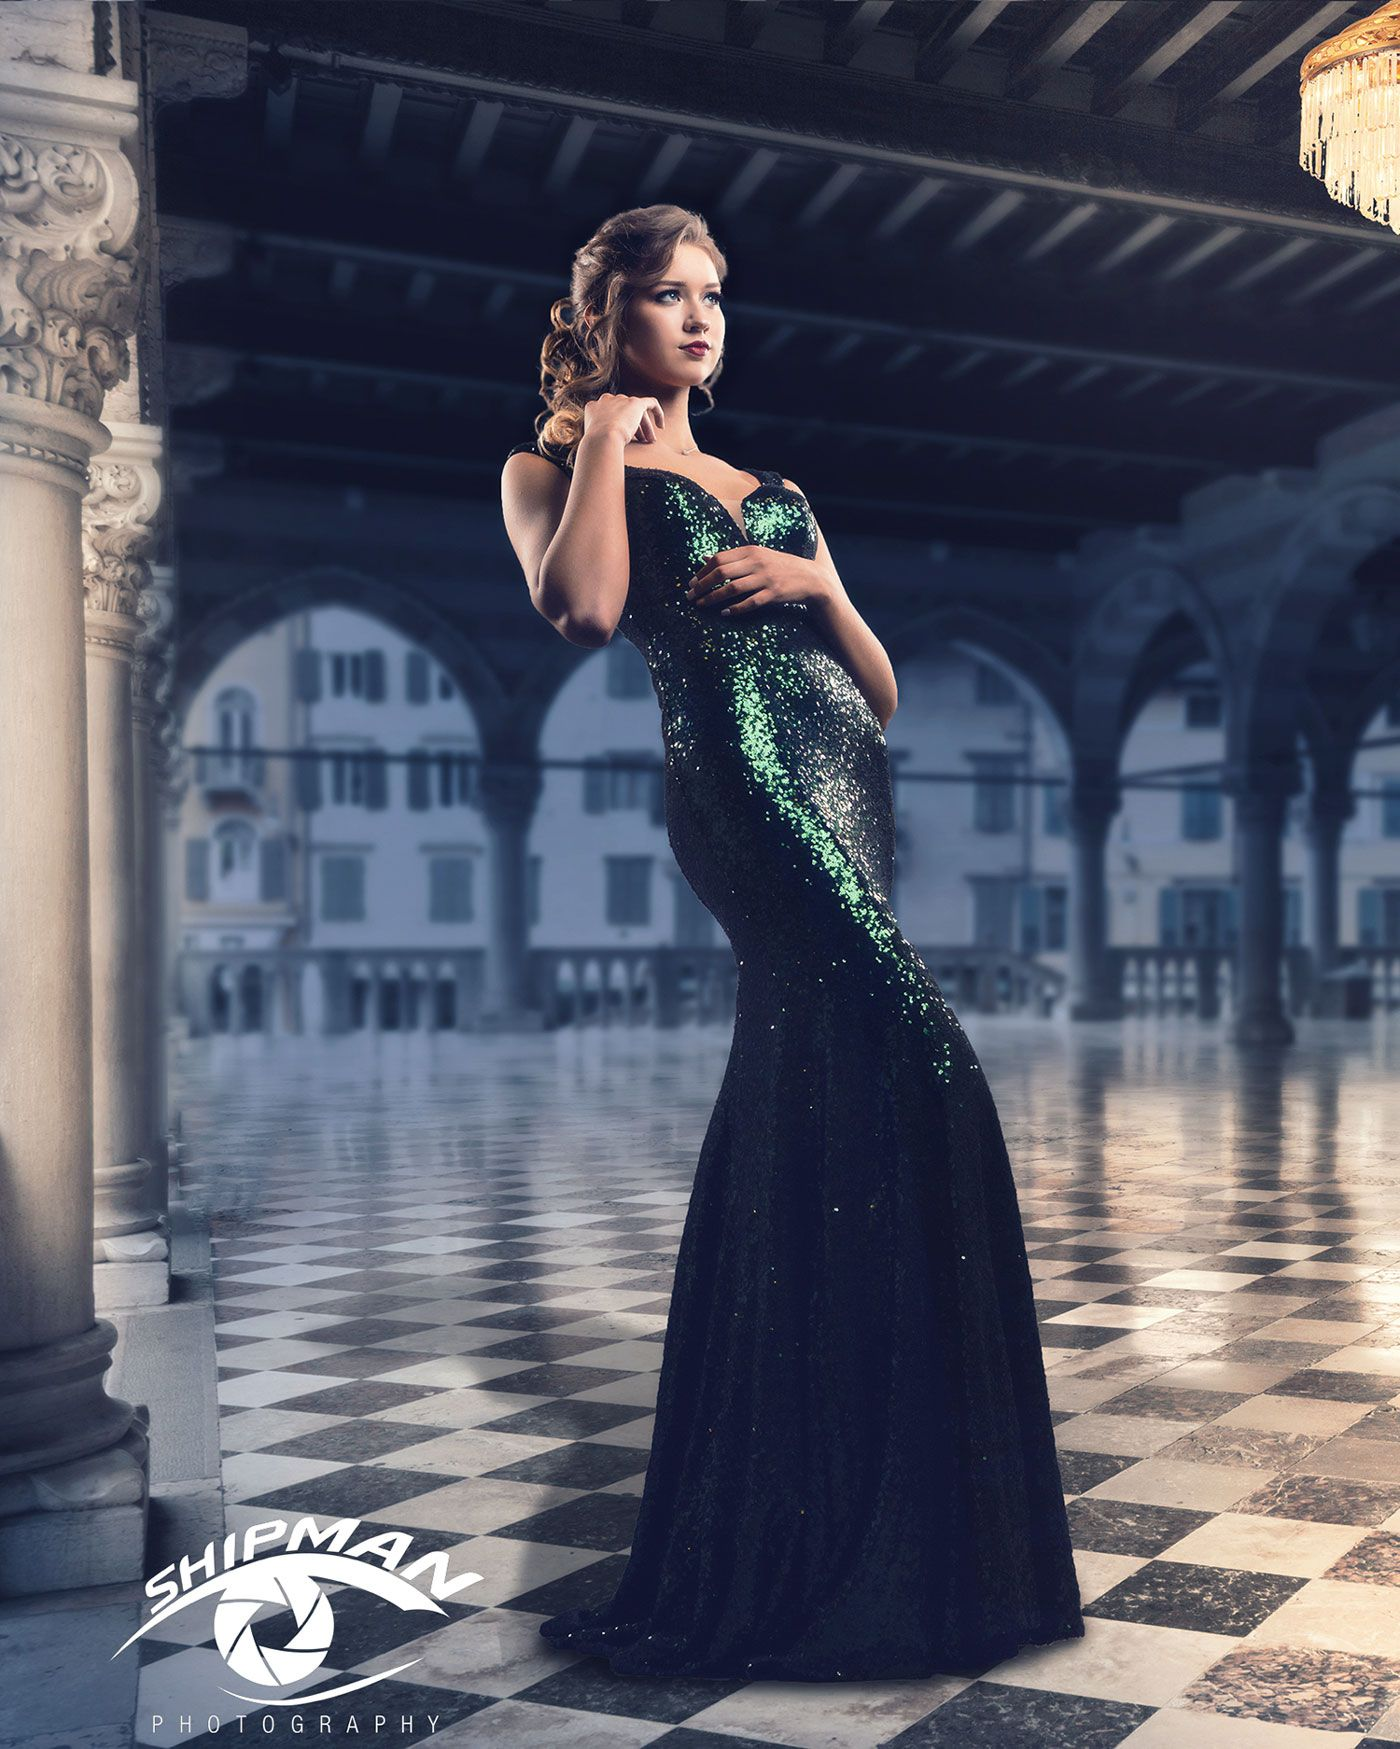 composite photo of a senior portrait girl in a fancy ballroom setting.